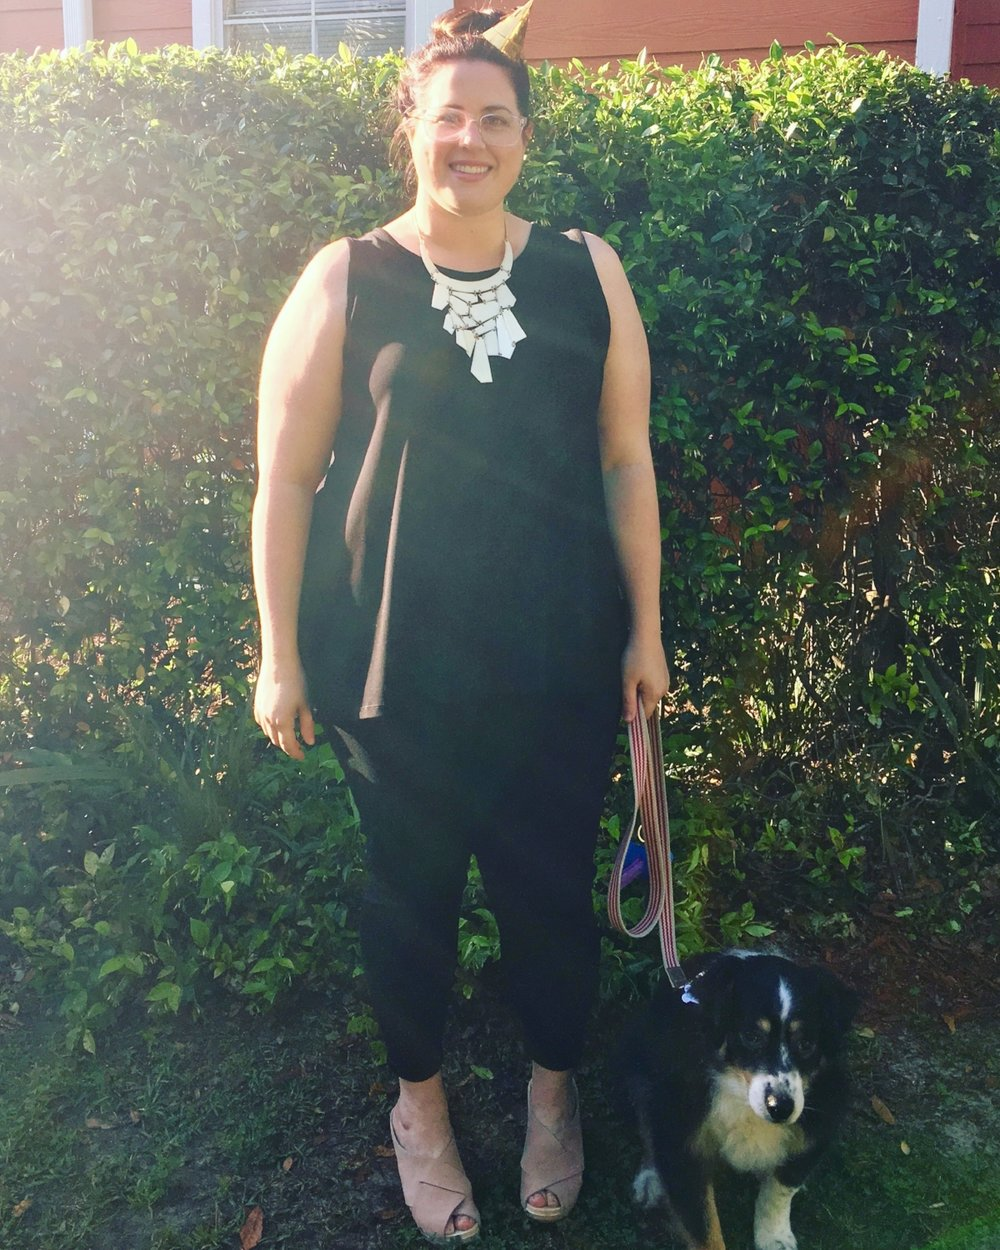 Outfit #2: Black jeans, a black tank top and blush clogs for a fun birthday look!